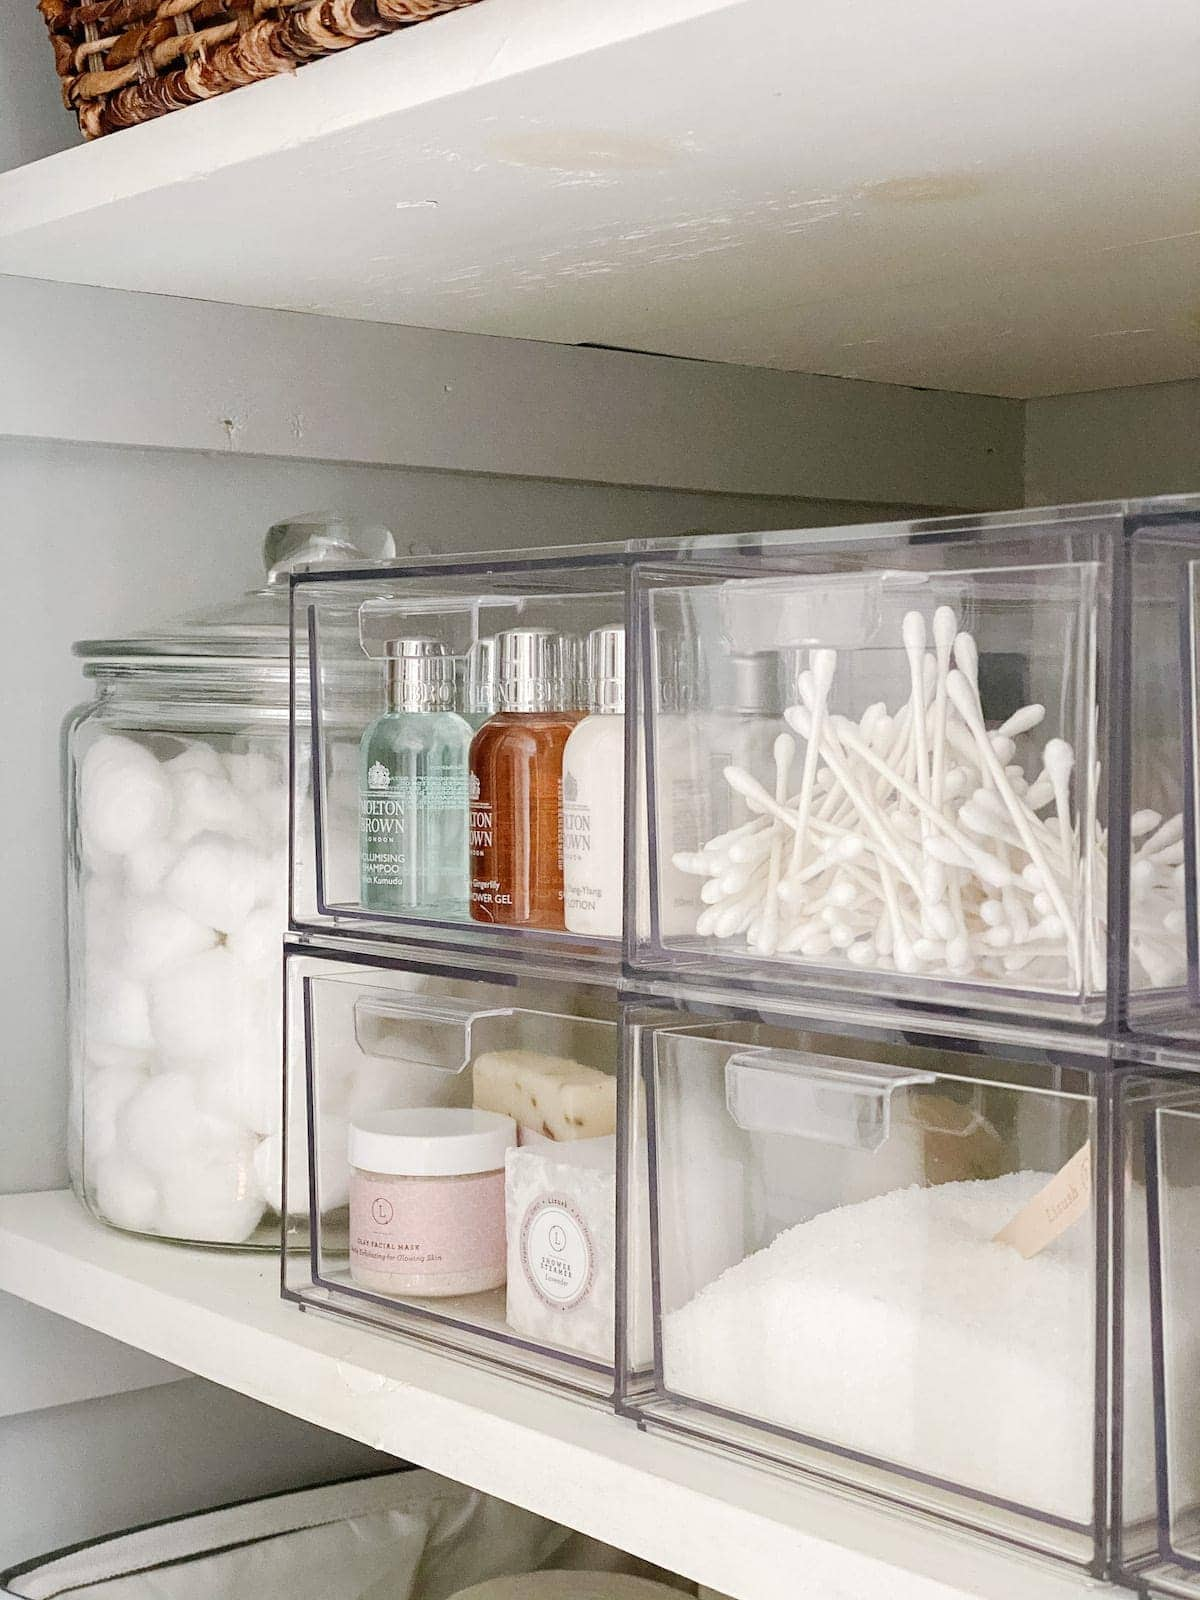 A complete tour of kids' bathroom organization ideas + all of the best organizers to make every bathroom tidy.